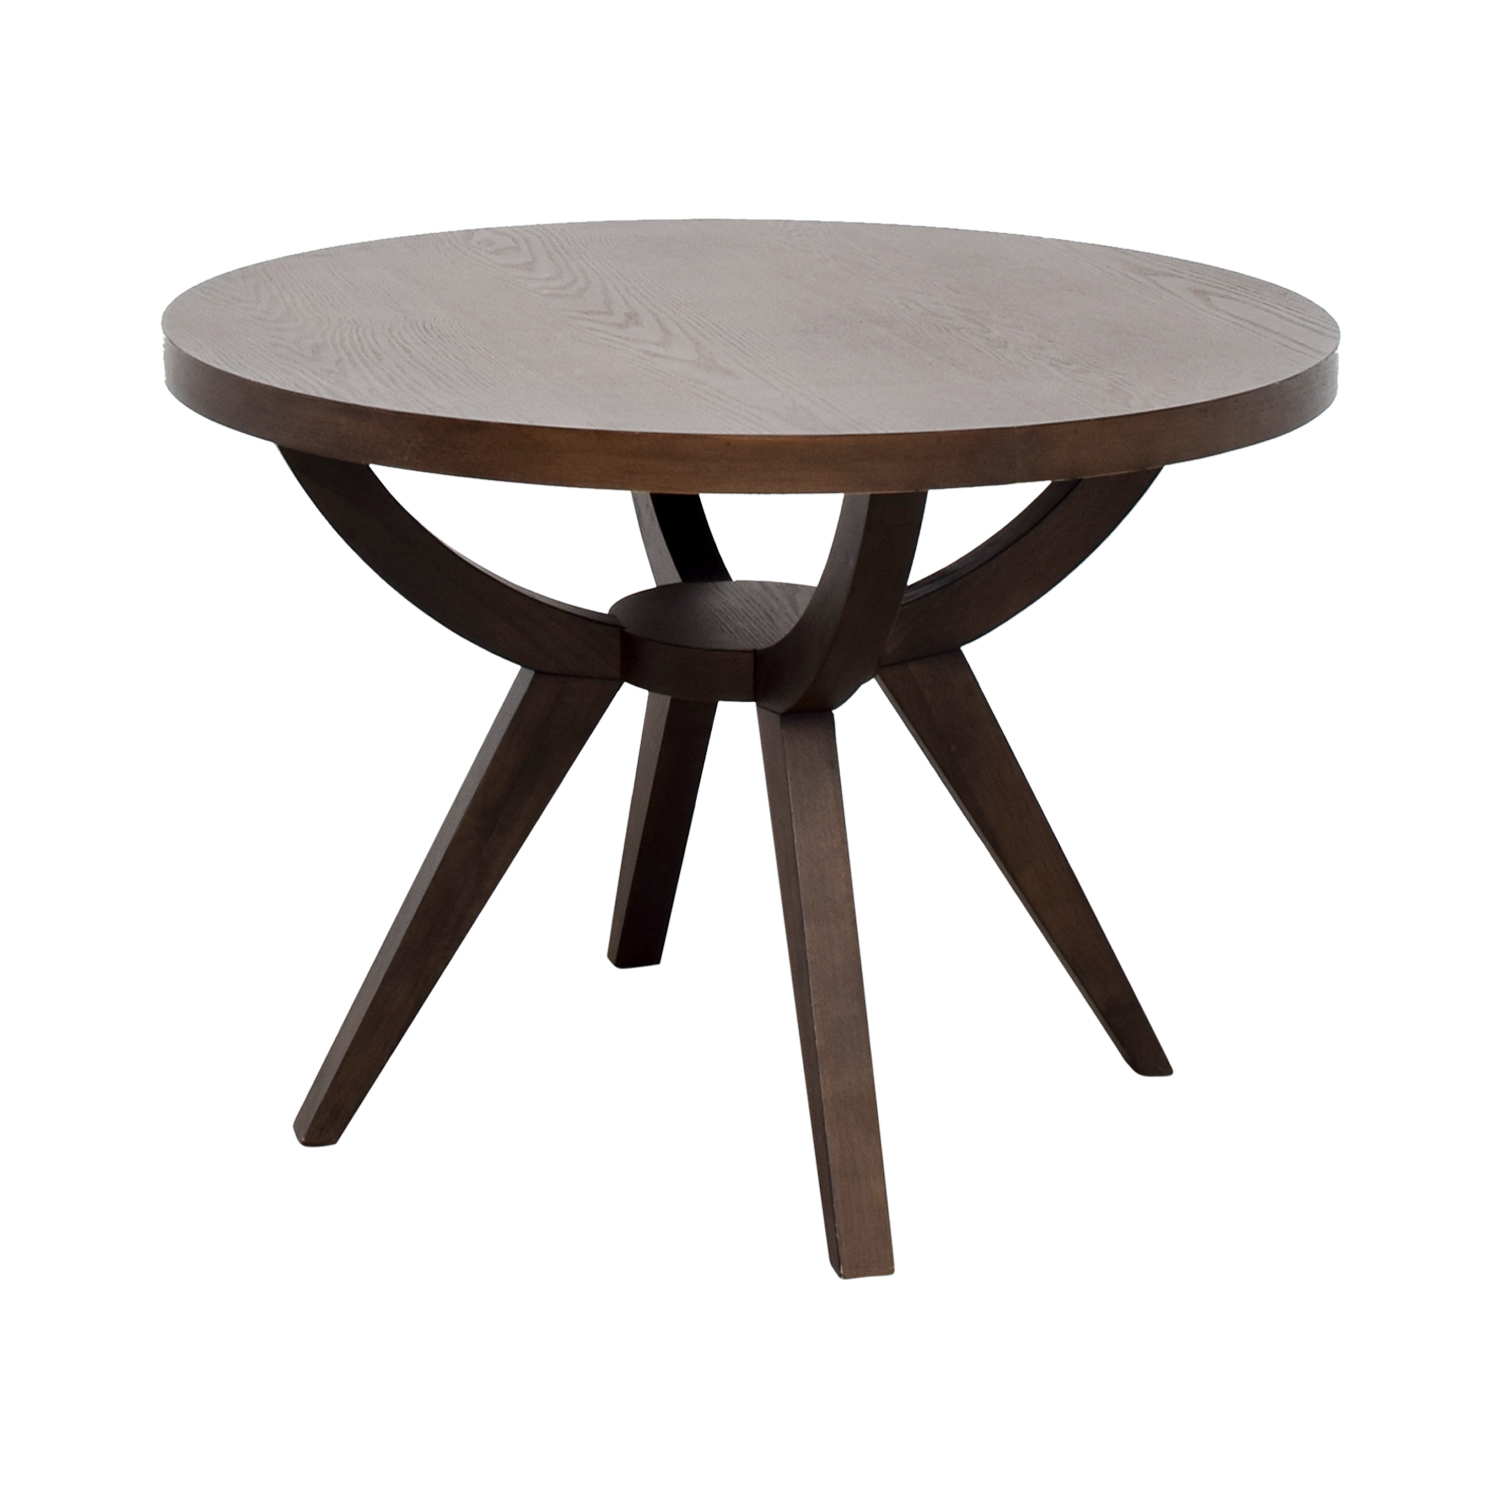 West Elm Arc Pedestal Dining Table / Dinner Tables